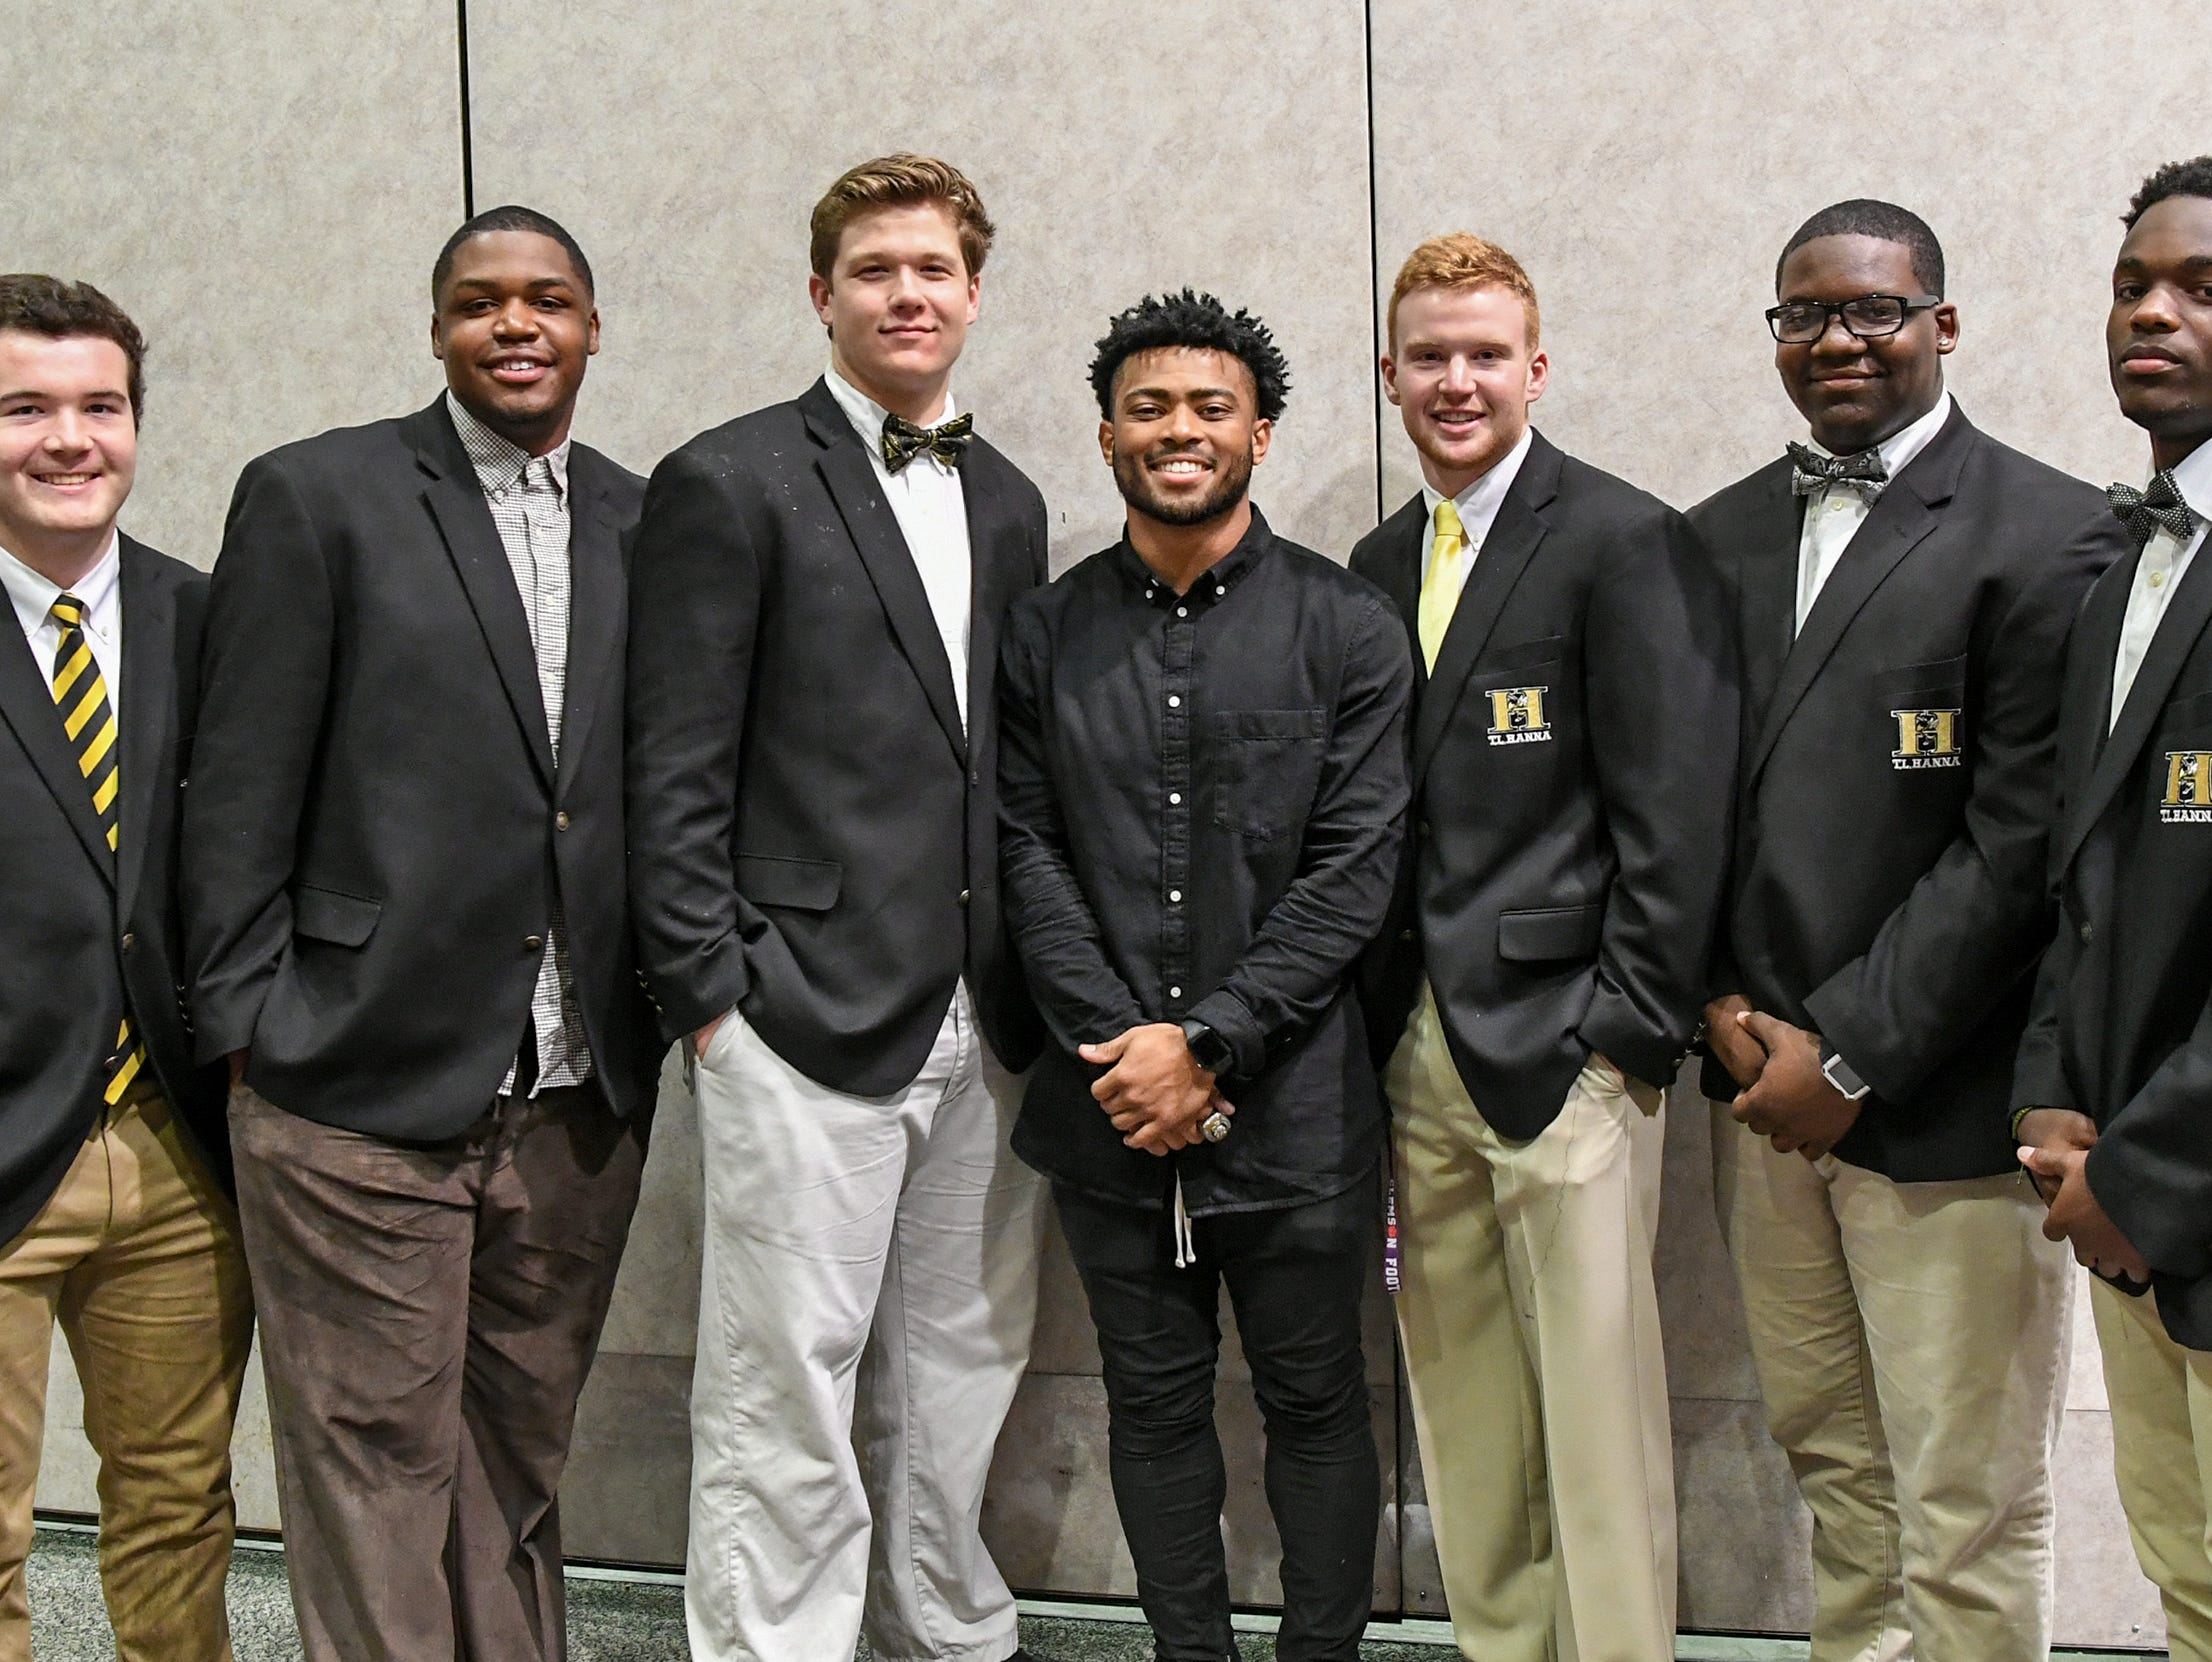 Darien Rencher, middle, former T.L. Hanna High School running back and current Clemson player poses with Hanna players recognized during the Anderson Area Touchdown Club Annual Awards Banquet at the Anderson County Civic Center Monday, April 8th, 2019. The club and county councilman Brett Sanders honored former Yellow Jacket Rencher who was part of two National Championship Clemson football teams, and still has two years of eligibility.